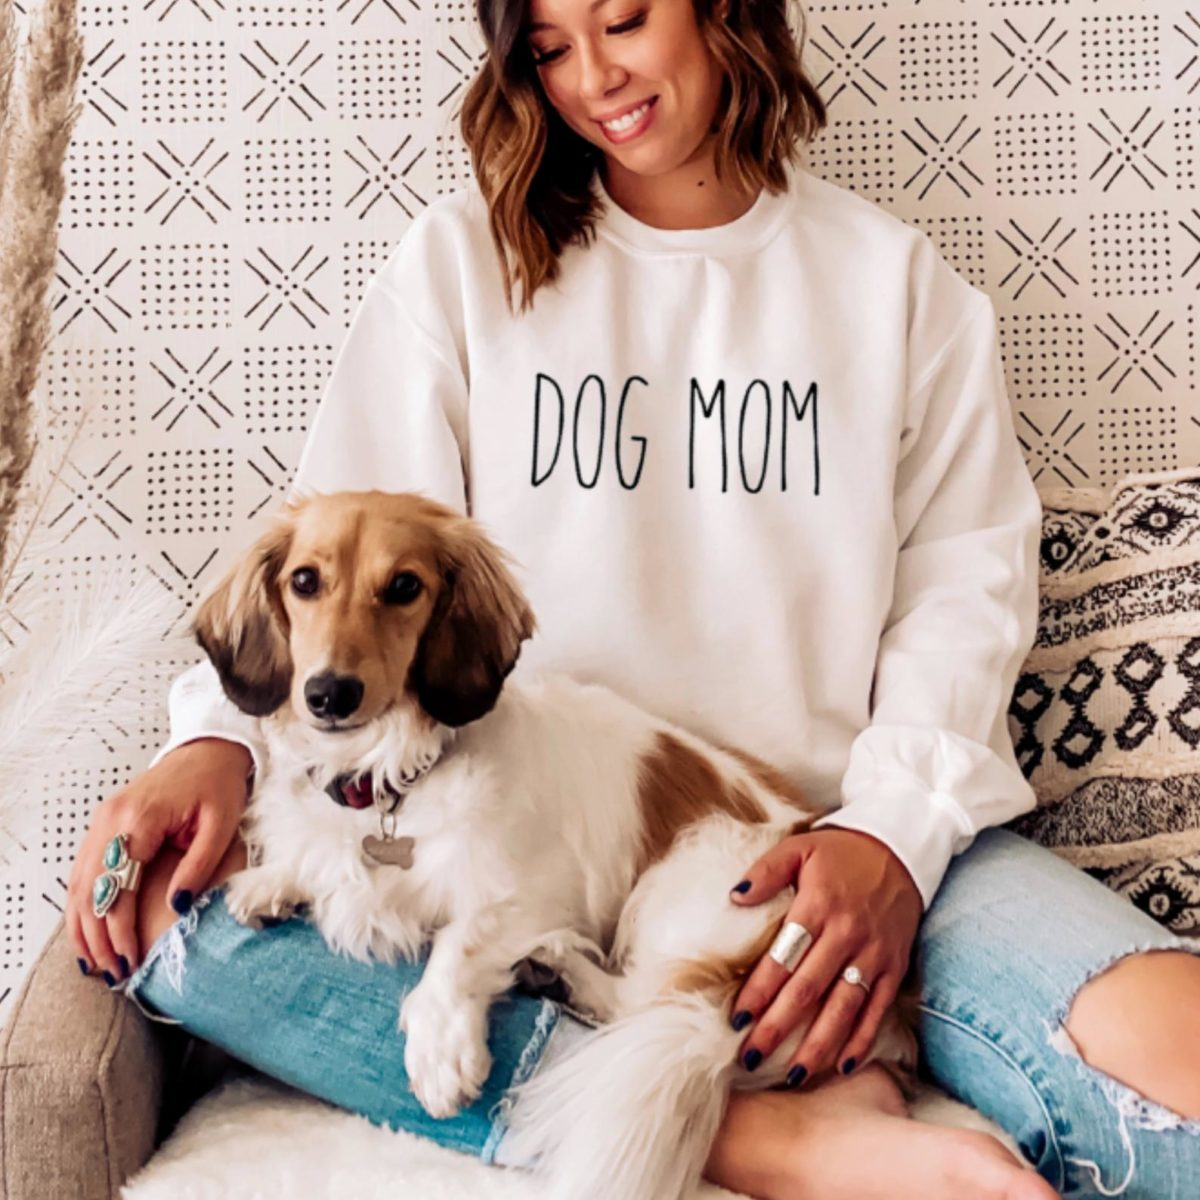 celebrate your favorite dog mom this mother's day with this adorable dog mom sweatshirt that so many love